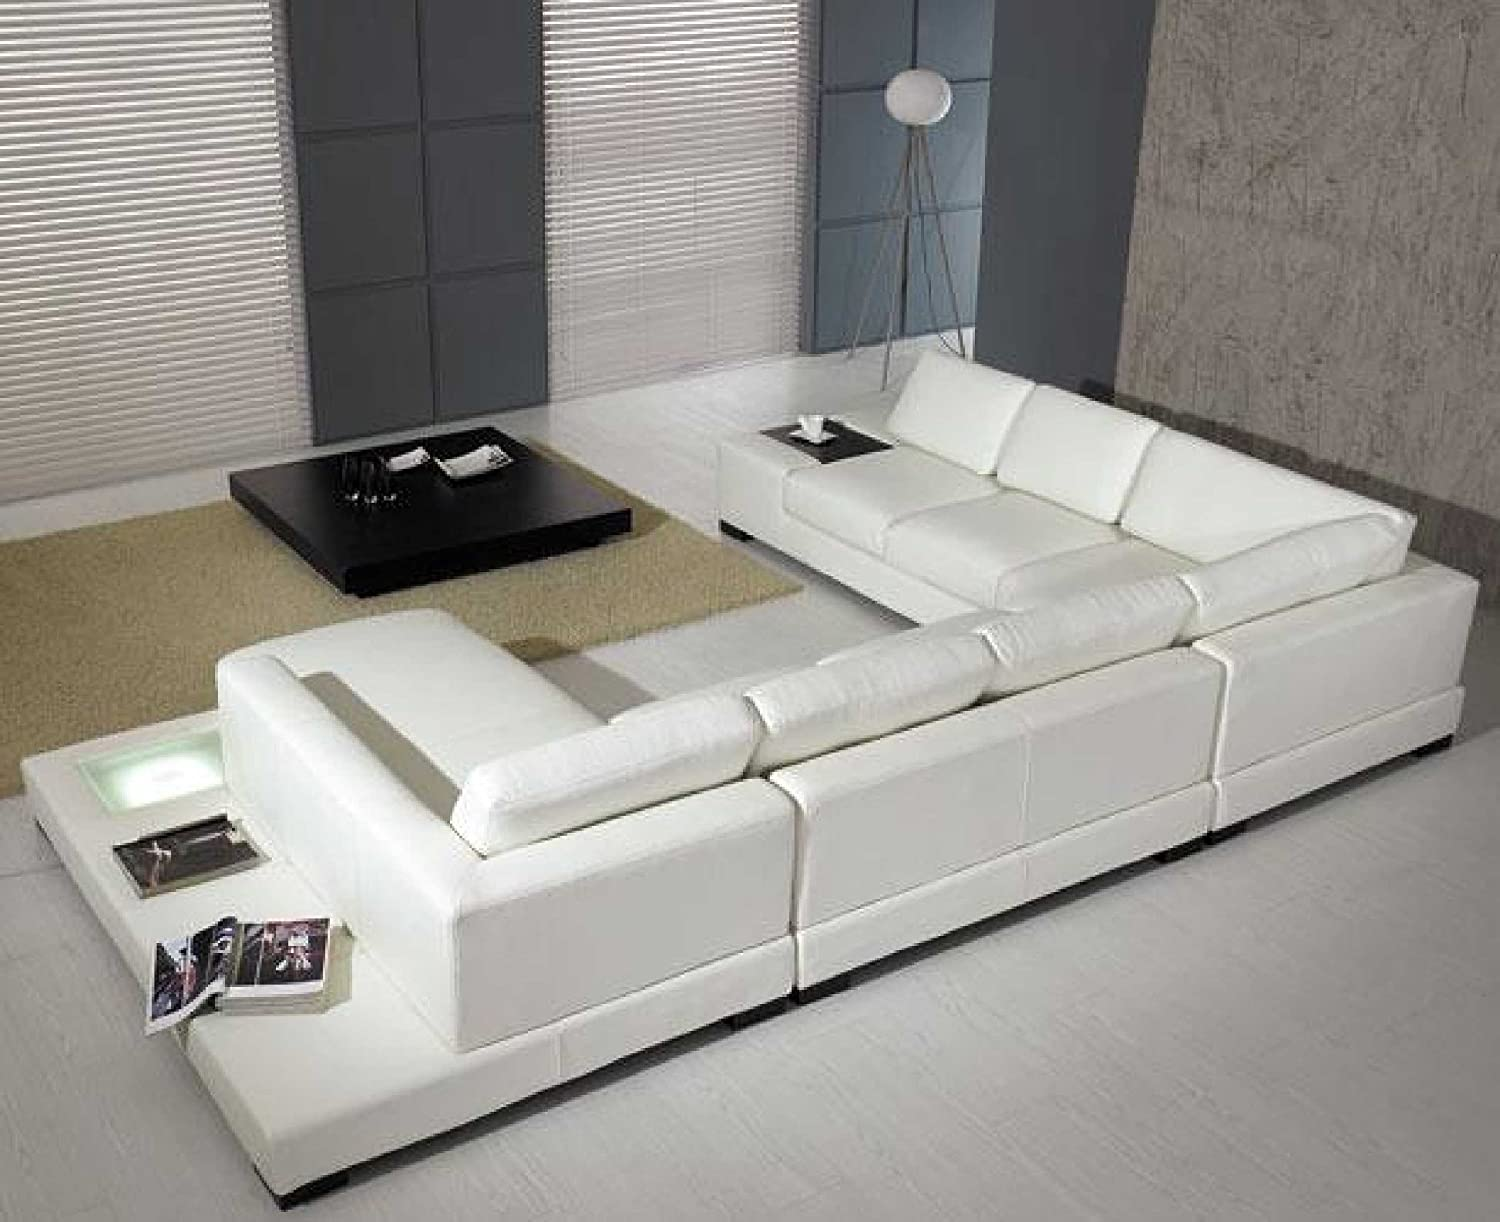 Amazon.com: T35 - White Bonded Leather Sectional Sofa Set with Light ...